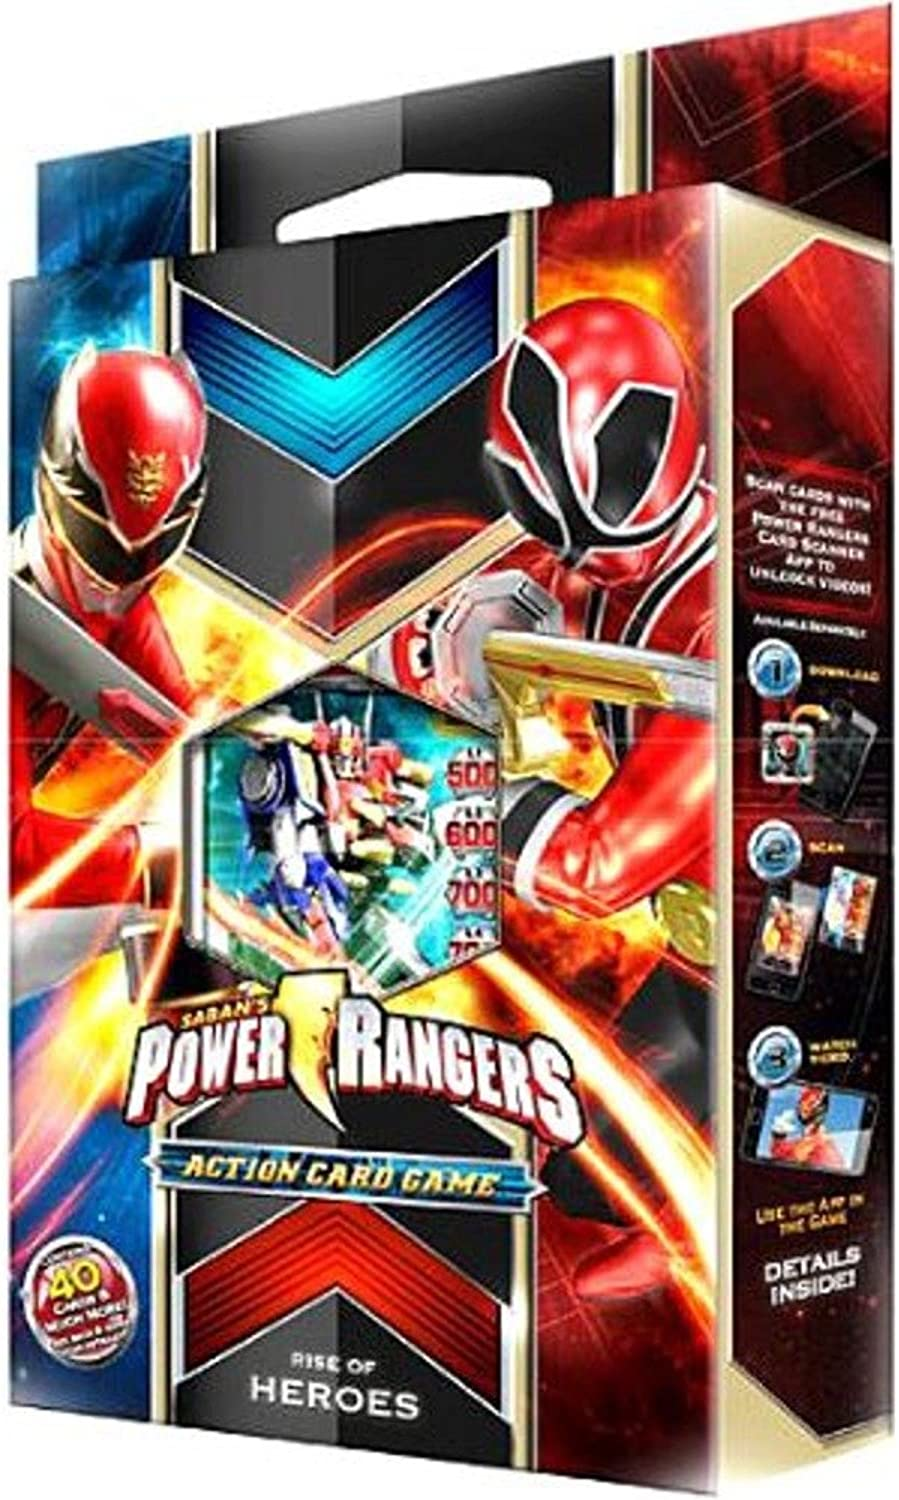 energia Rangers Megaforce azione autod gioco estrellater Deck Rise of Heroes by Beai